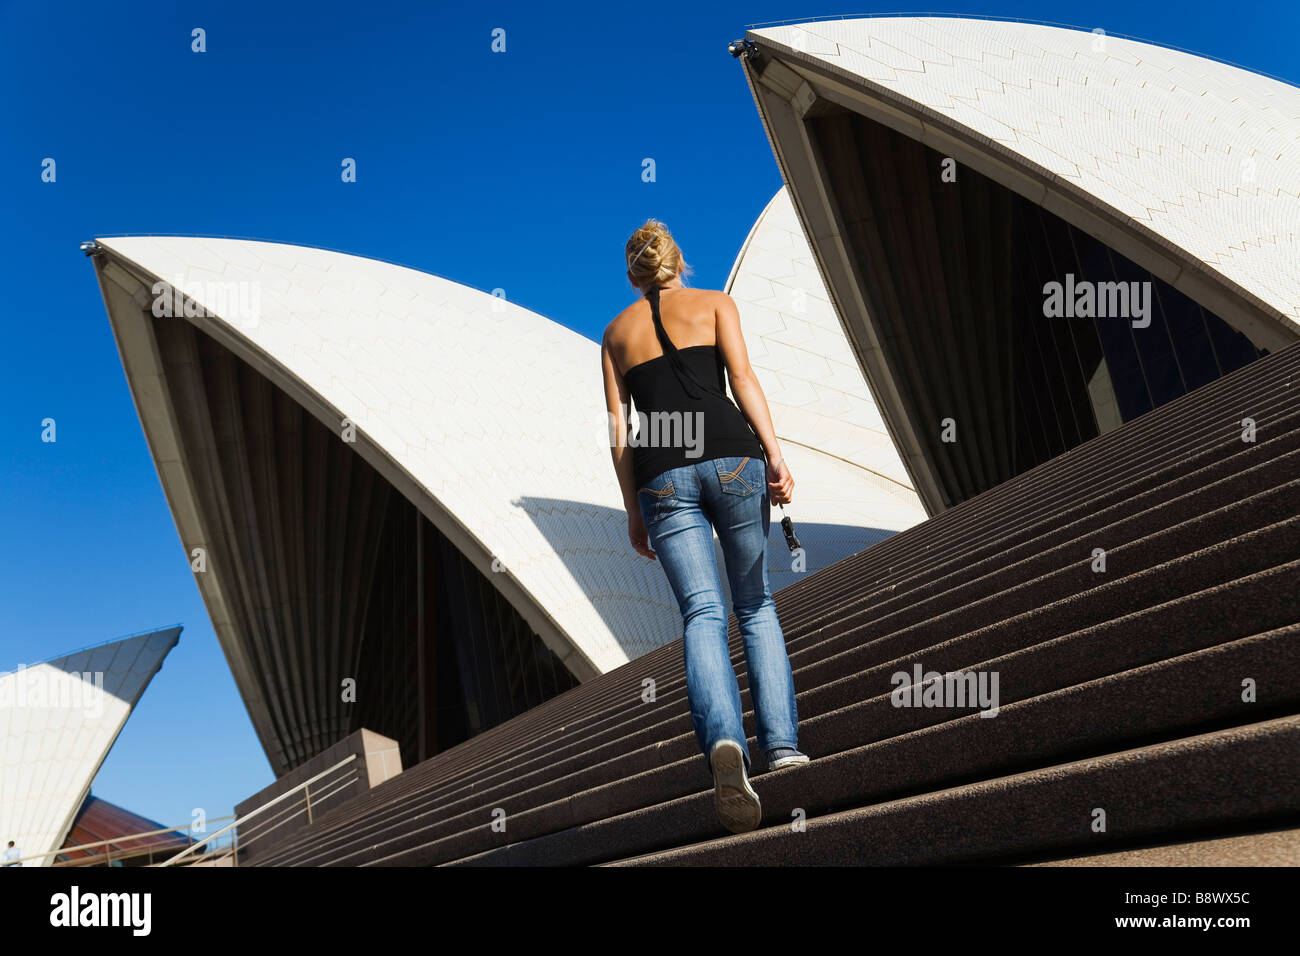 A tourist climbs the steps of the Sydney Opera House.  Sydney, New South Wales, AUSTRALIA - Stock Image